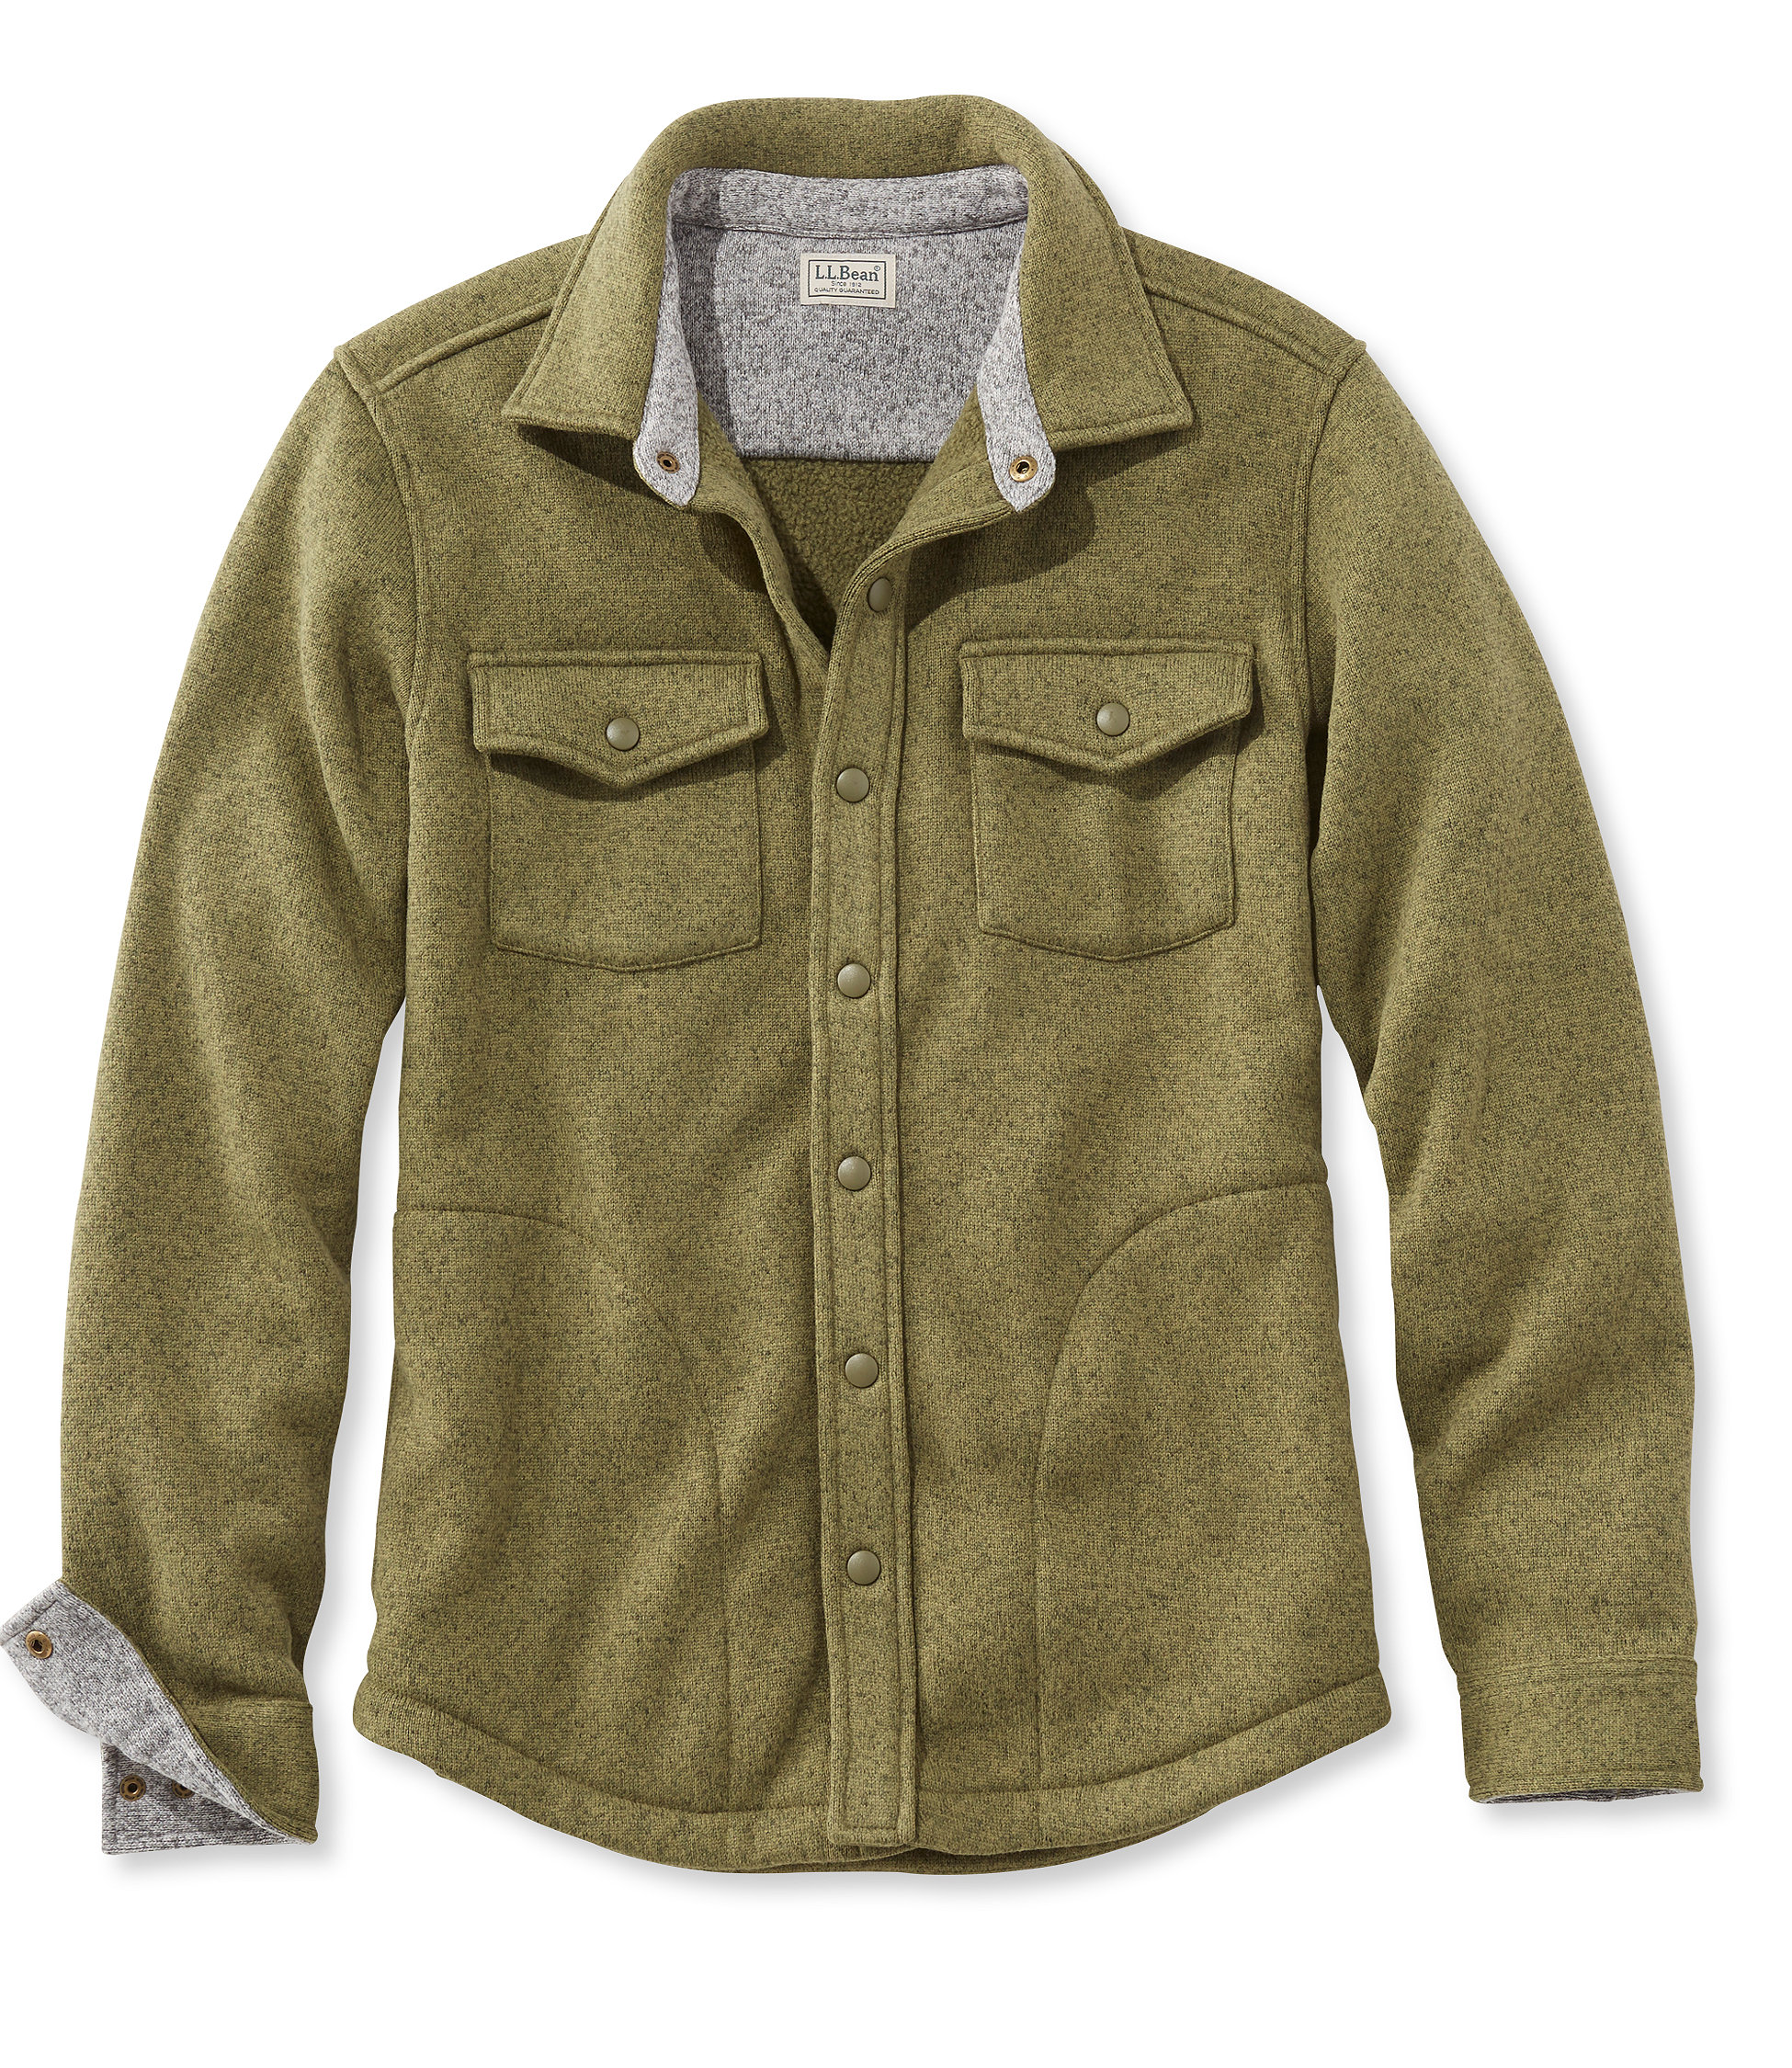 L.L.Bean Sweater Fleece Shirt-Jac